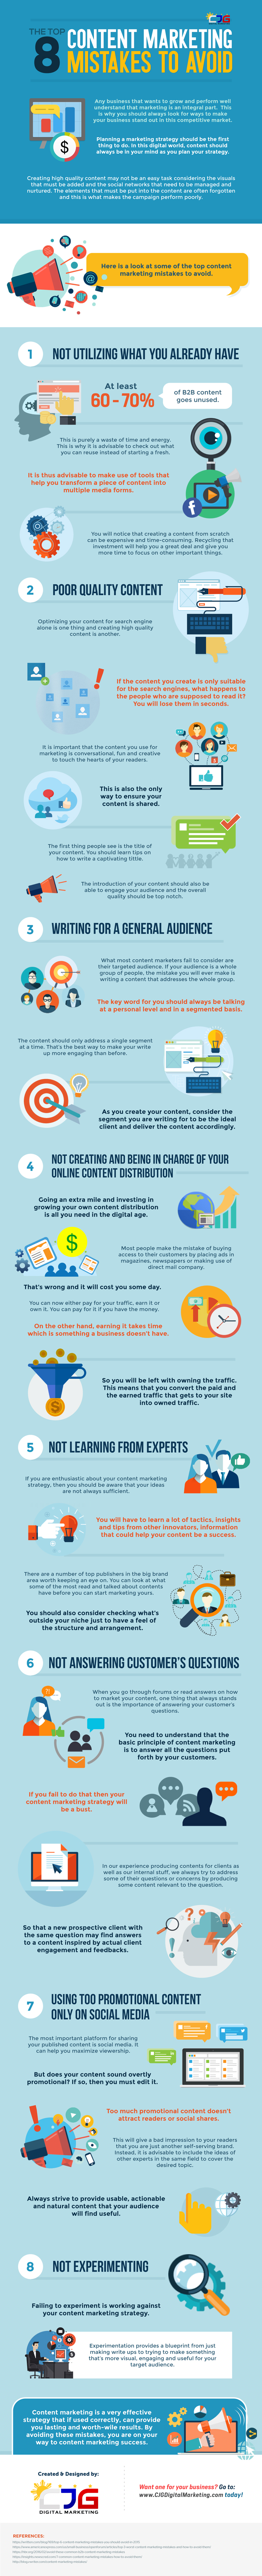 The-Top-8-Content-Marketing-Mistakes-to-Avoid